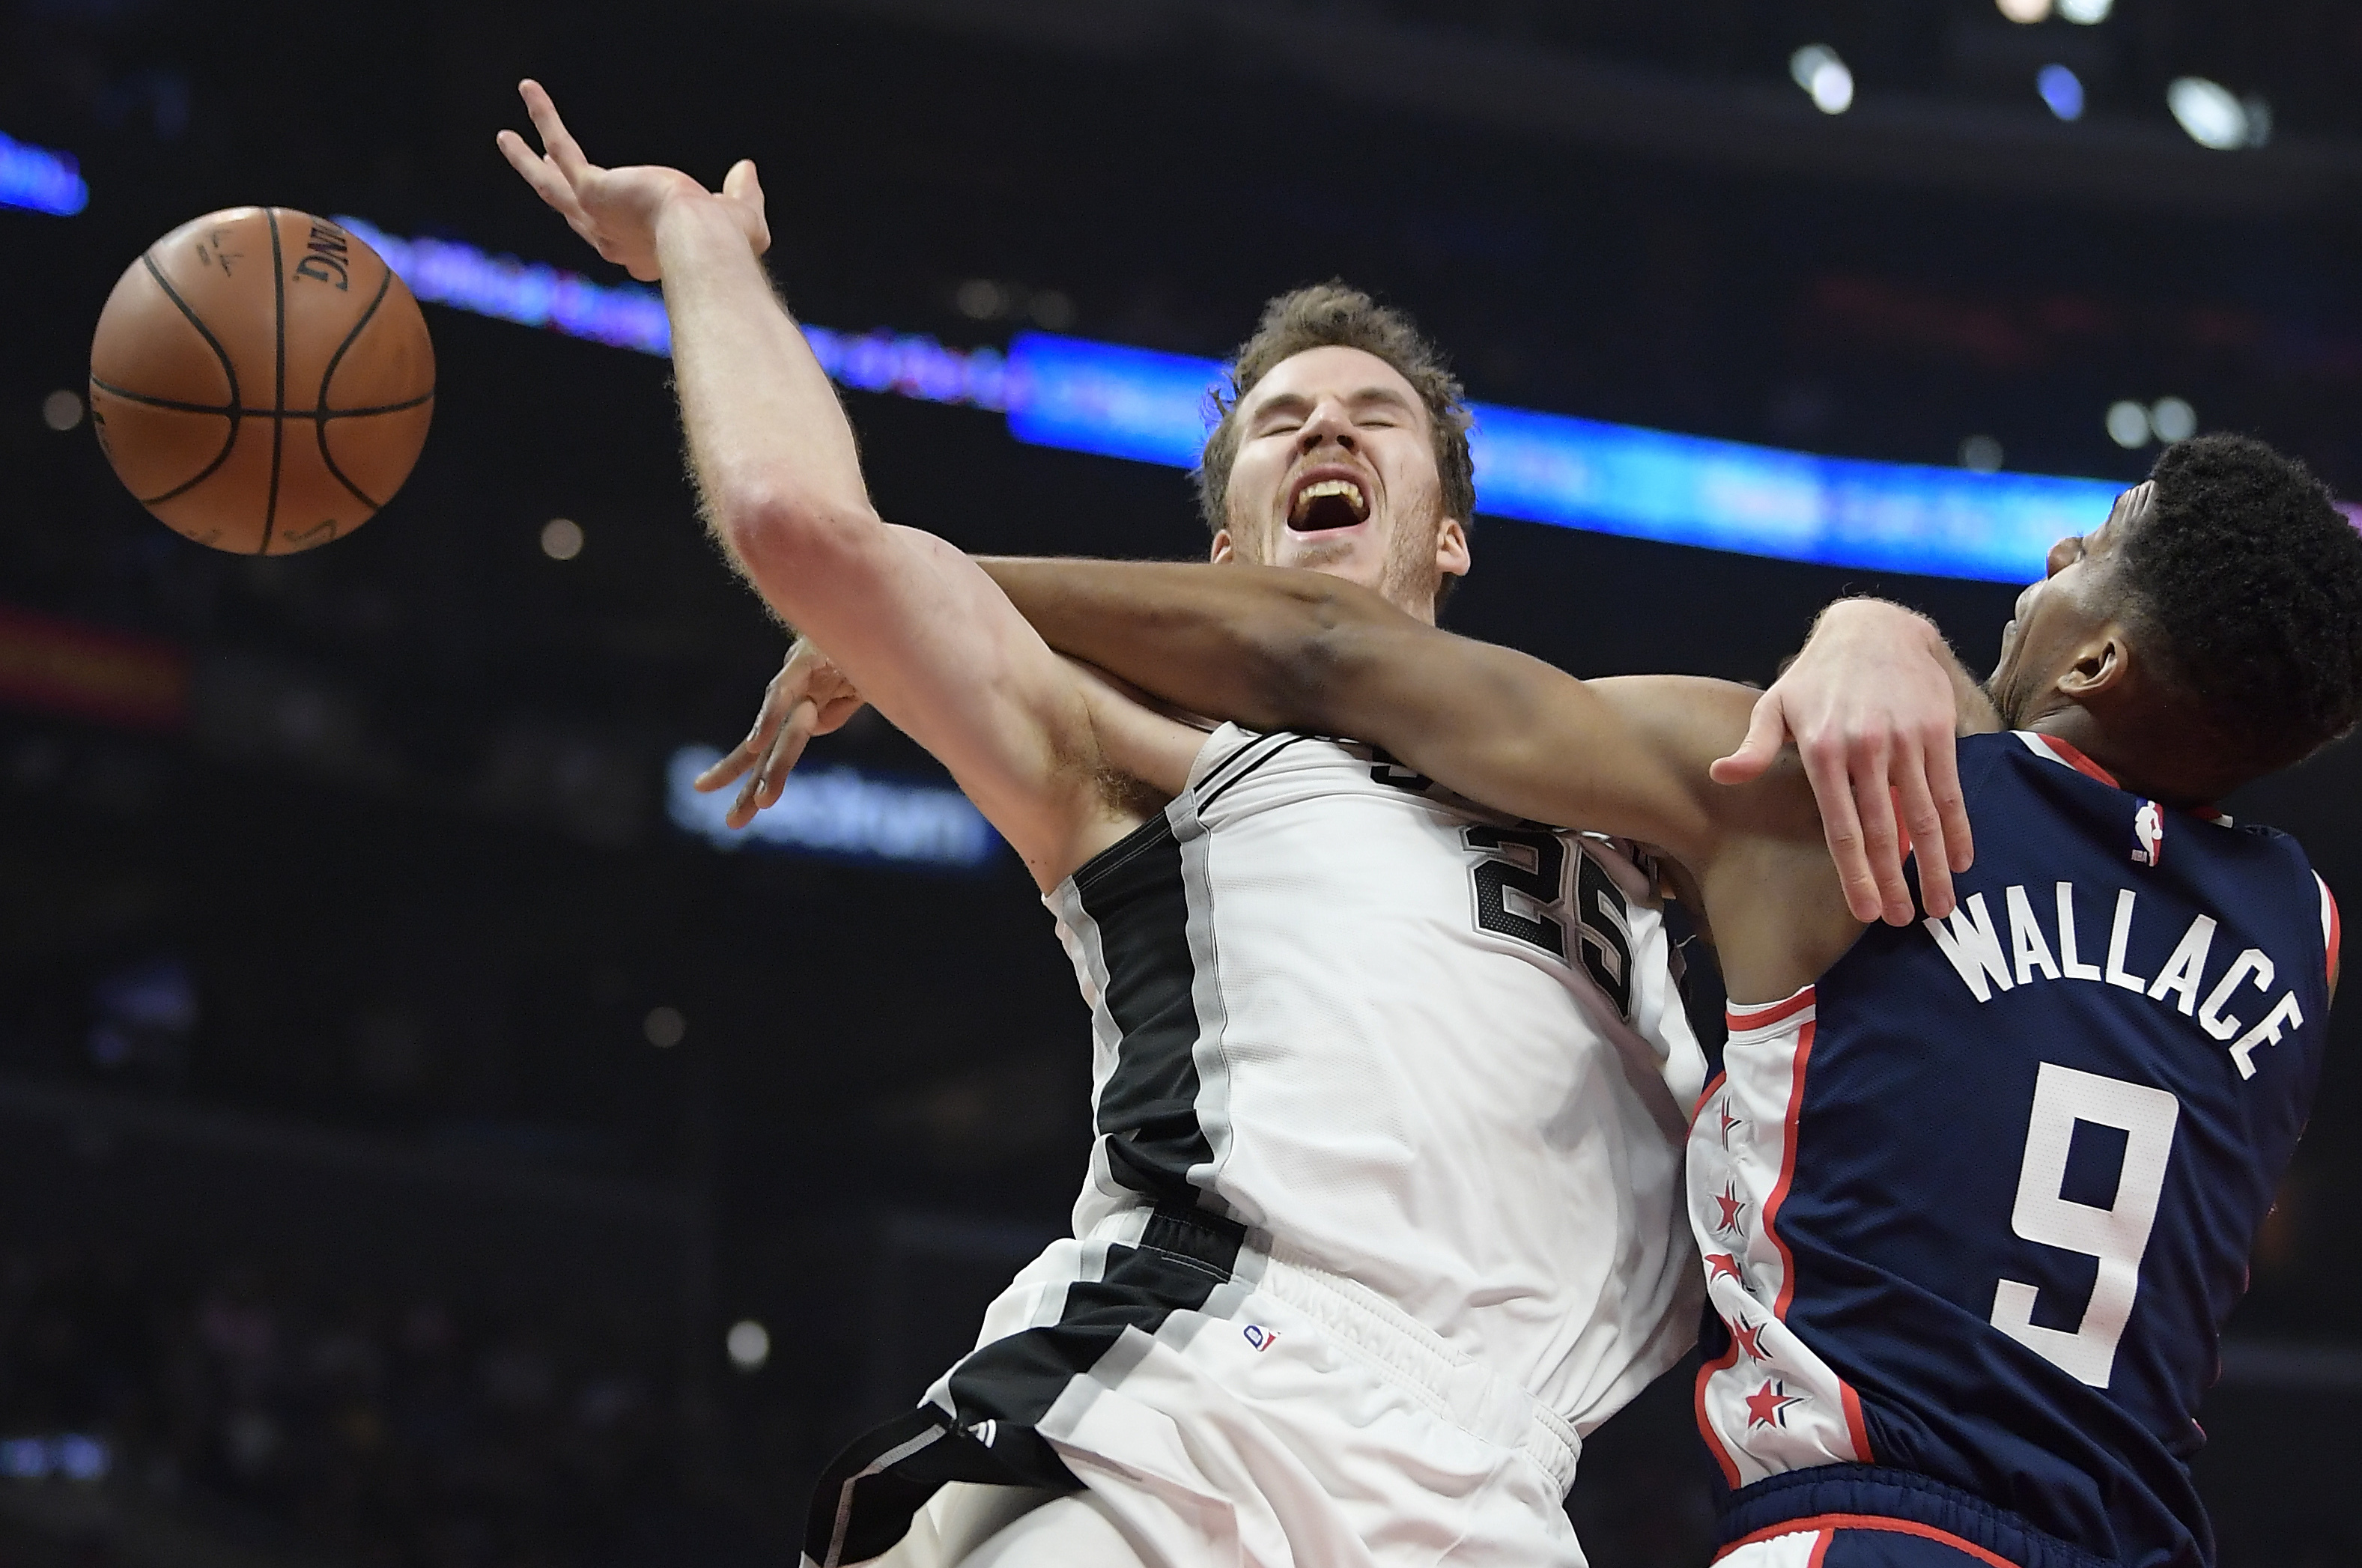 Aldridge scores 38 to lead Spurs past Clippers 122-111